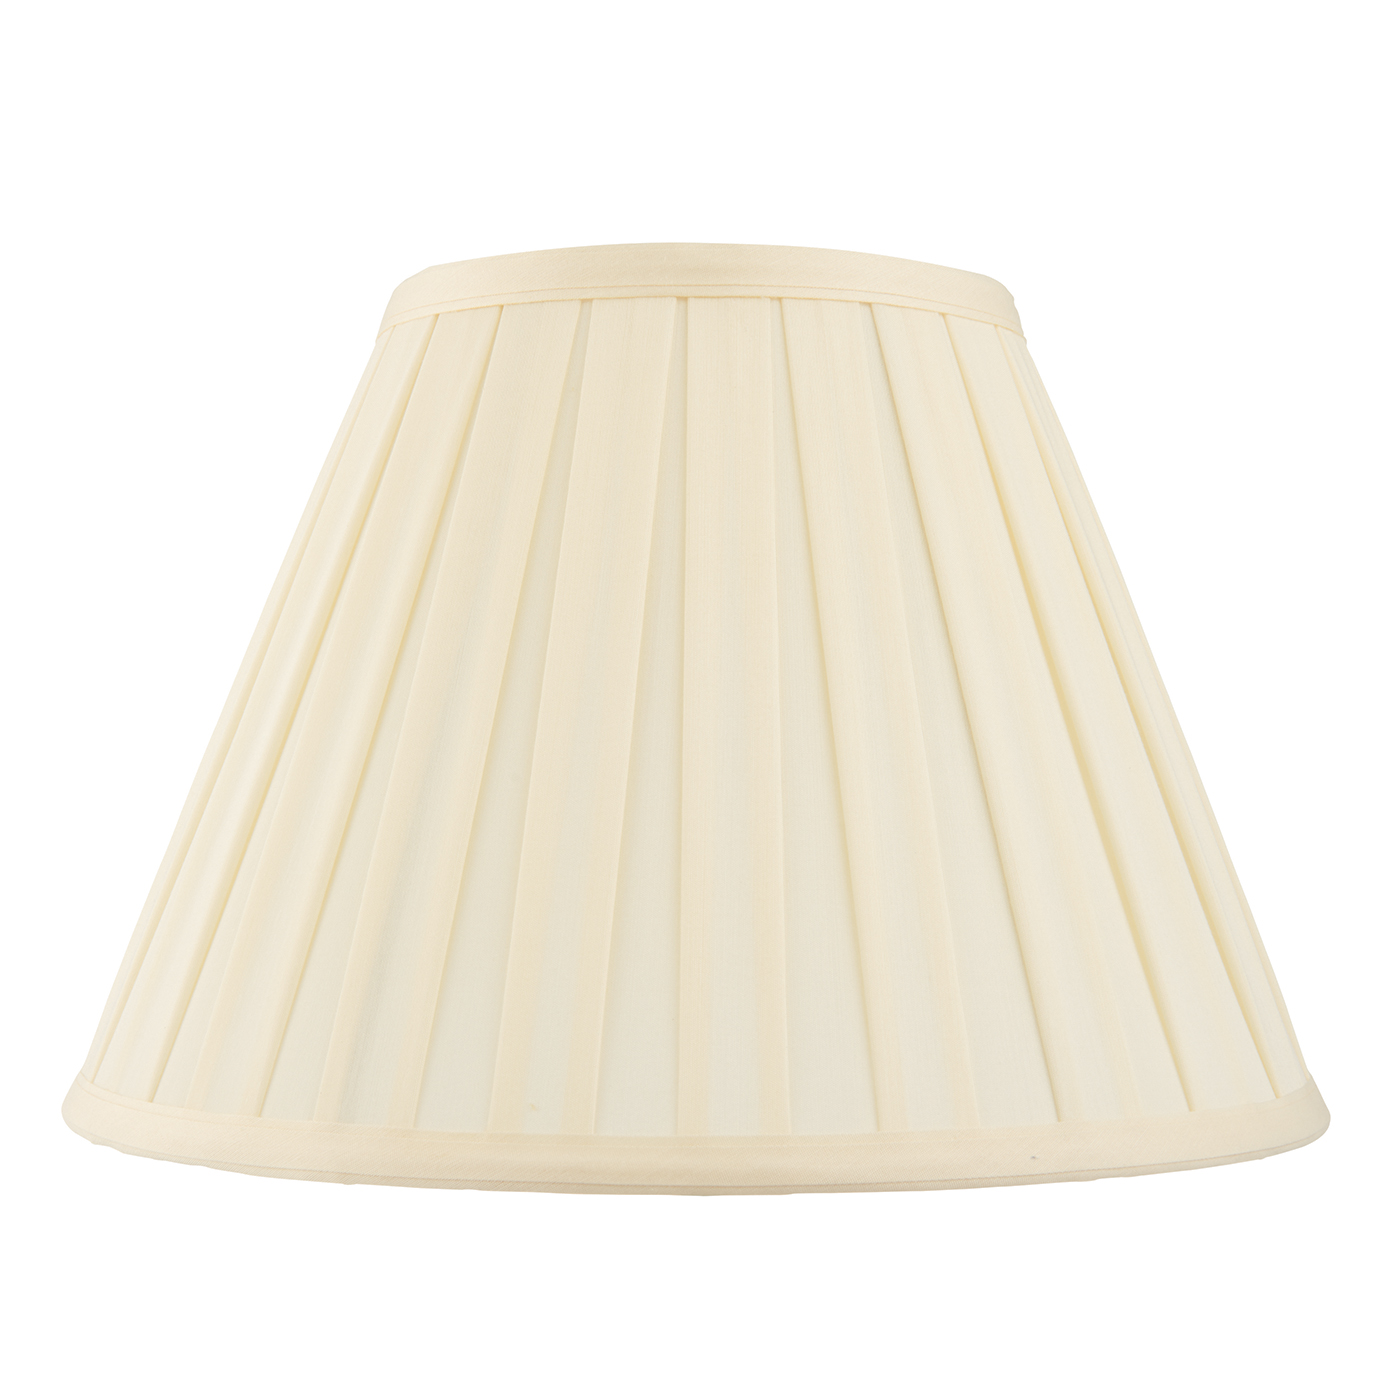 Endon Carla lampshade 12 inch Cream tc fabric 205mm H x 310mm D max.